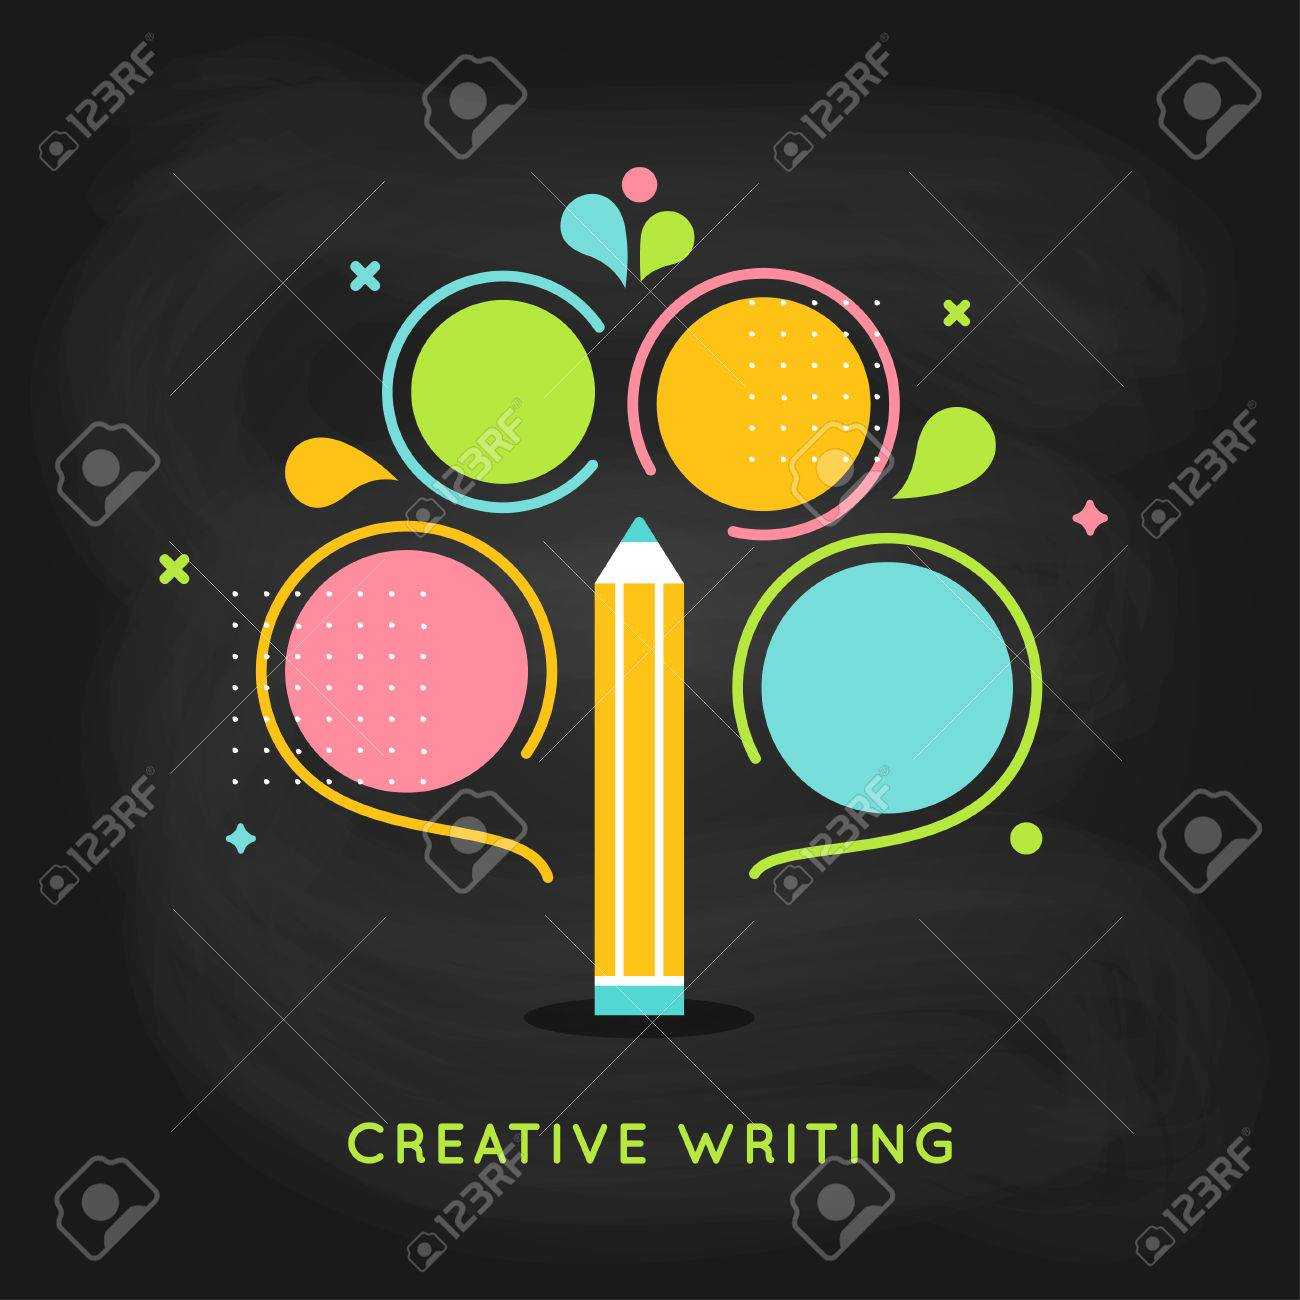 creative writing plan info graphics template on chalkboard background stock vector 61117025